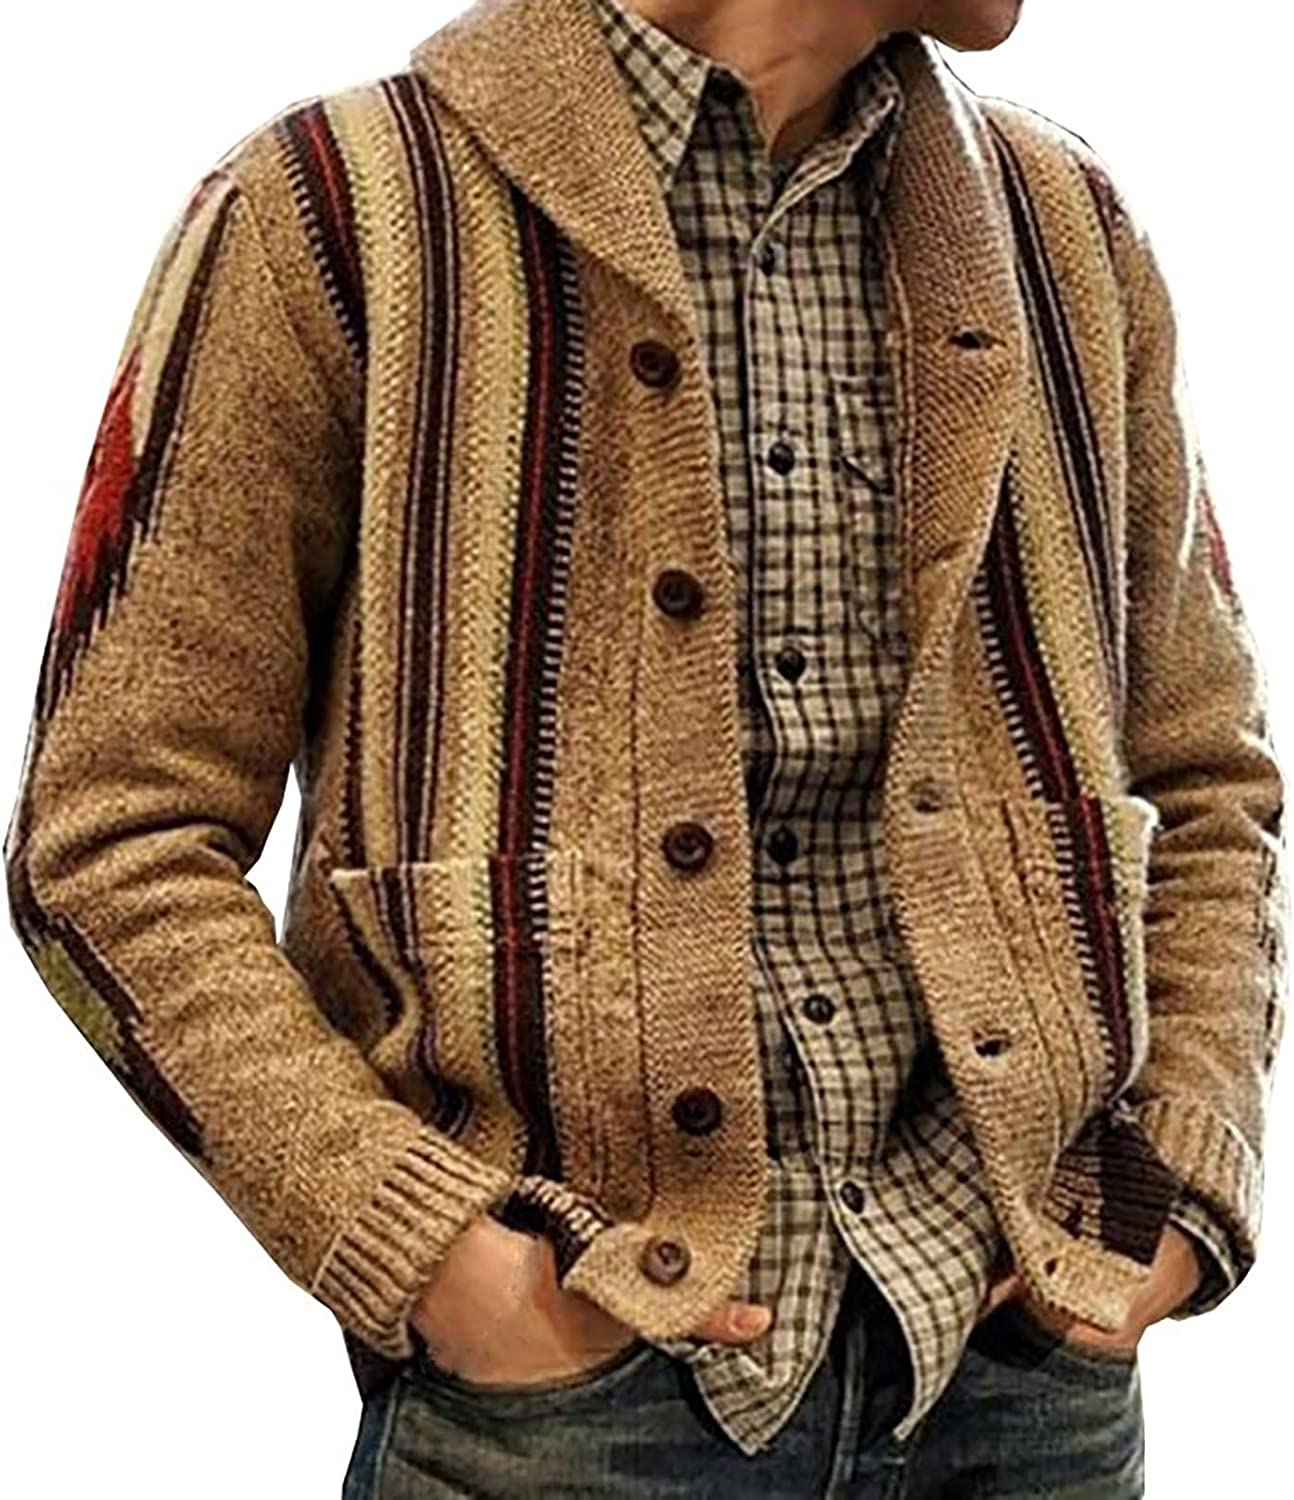 Knitwear Sweater for Men's Coat Fashion Retro Lapel Button Loose Plus Size Cable Knited Cardigan Henley Sweater